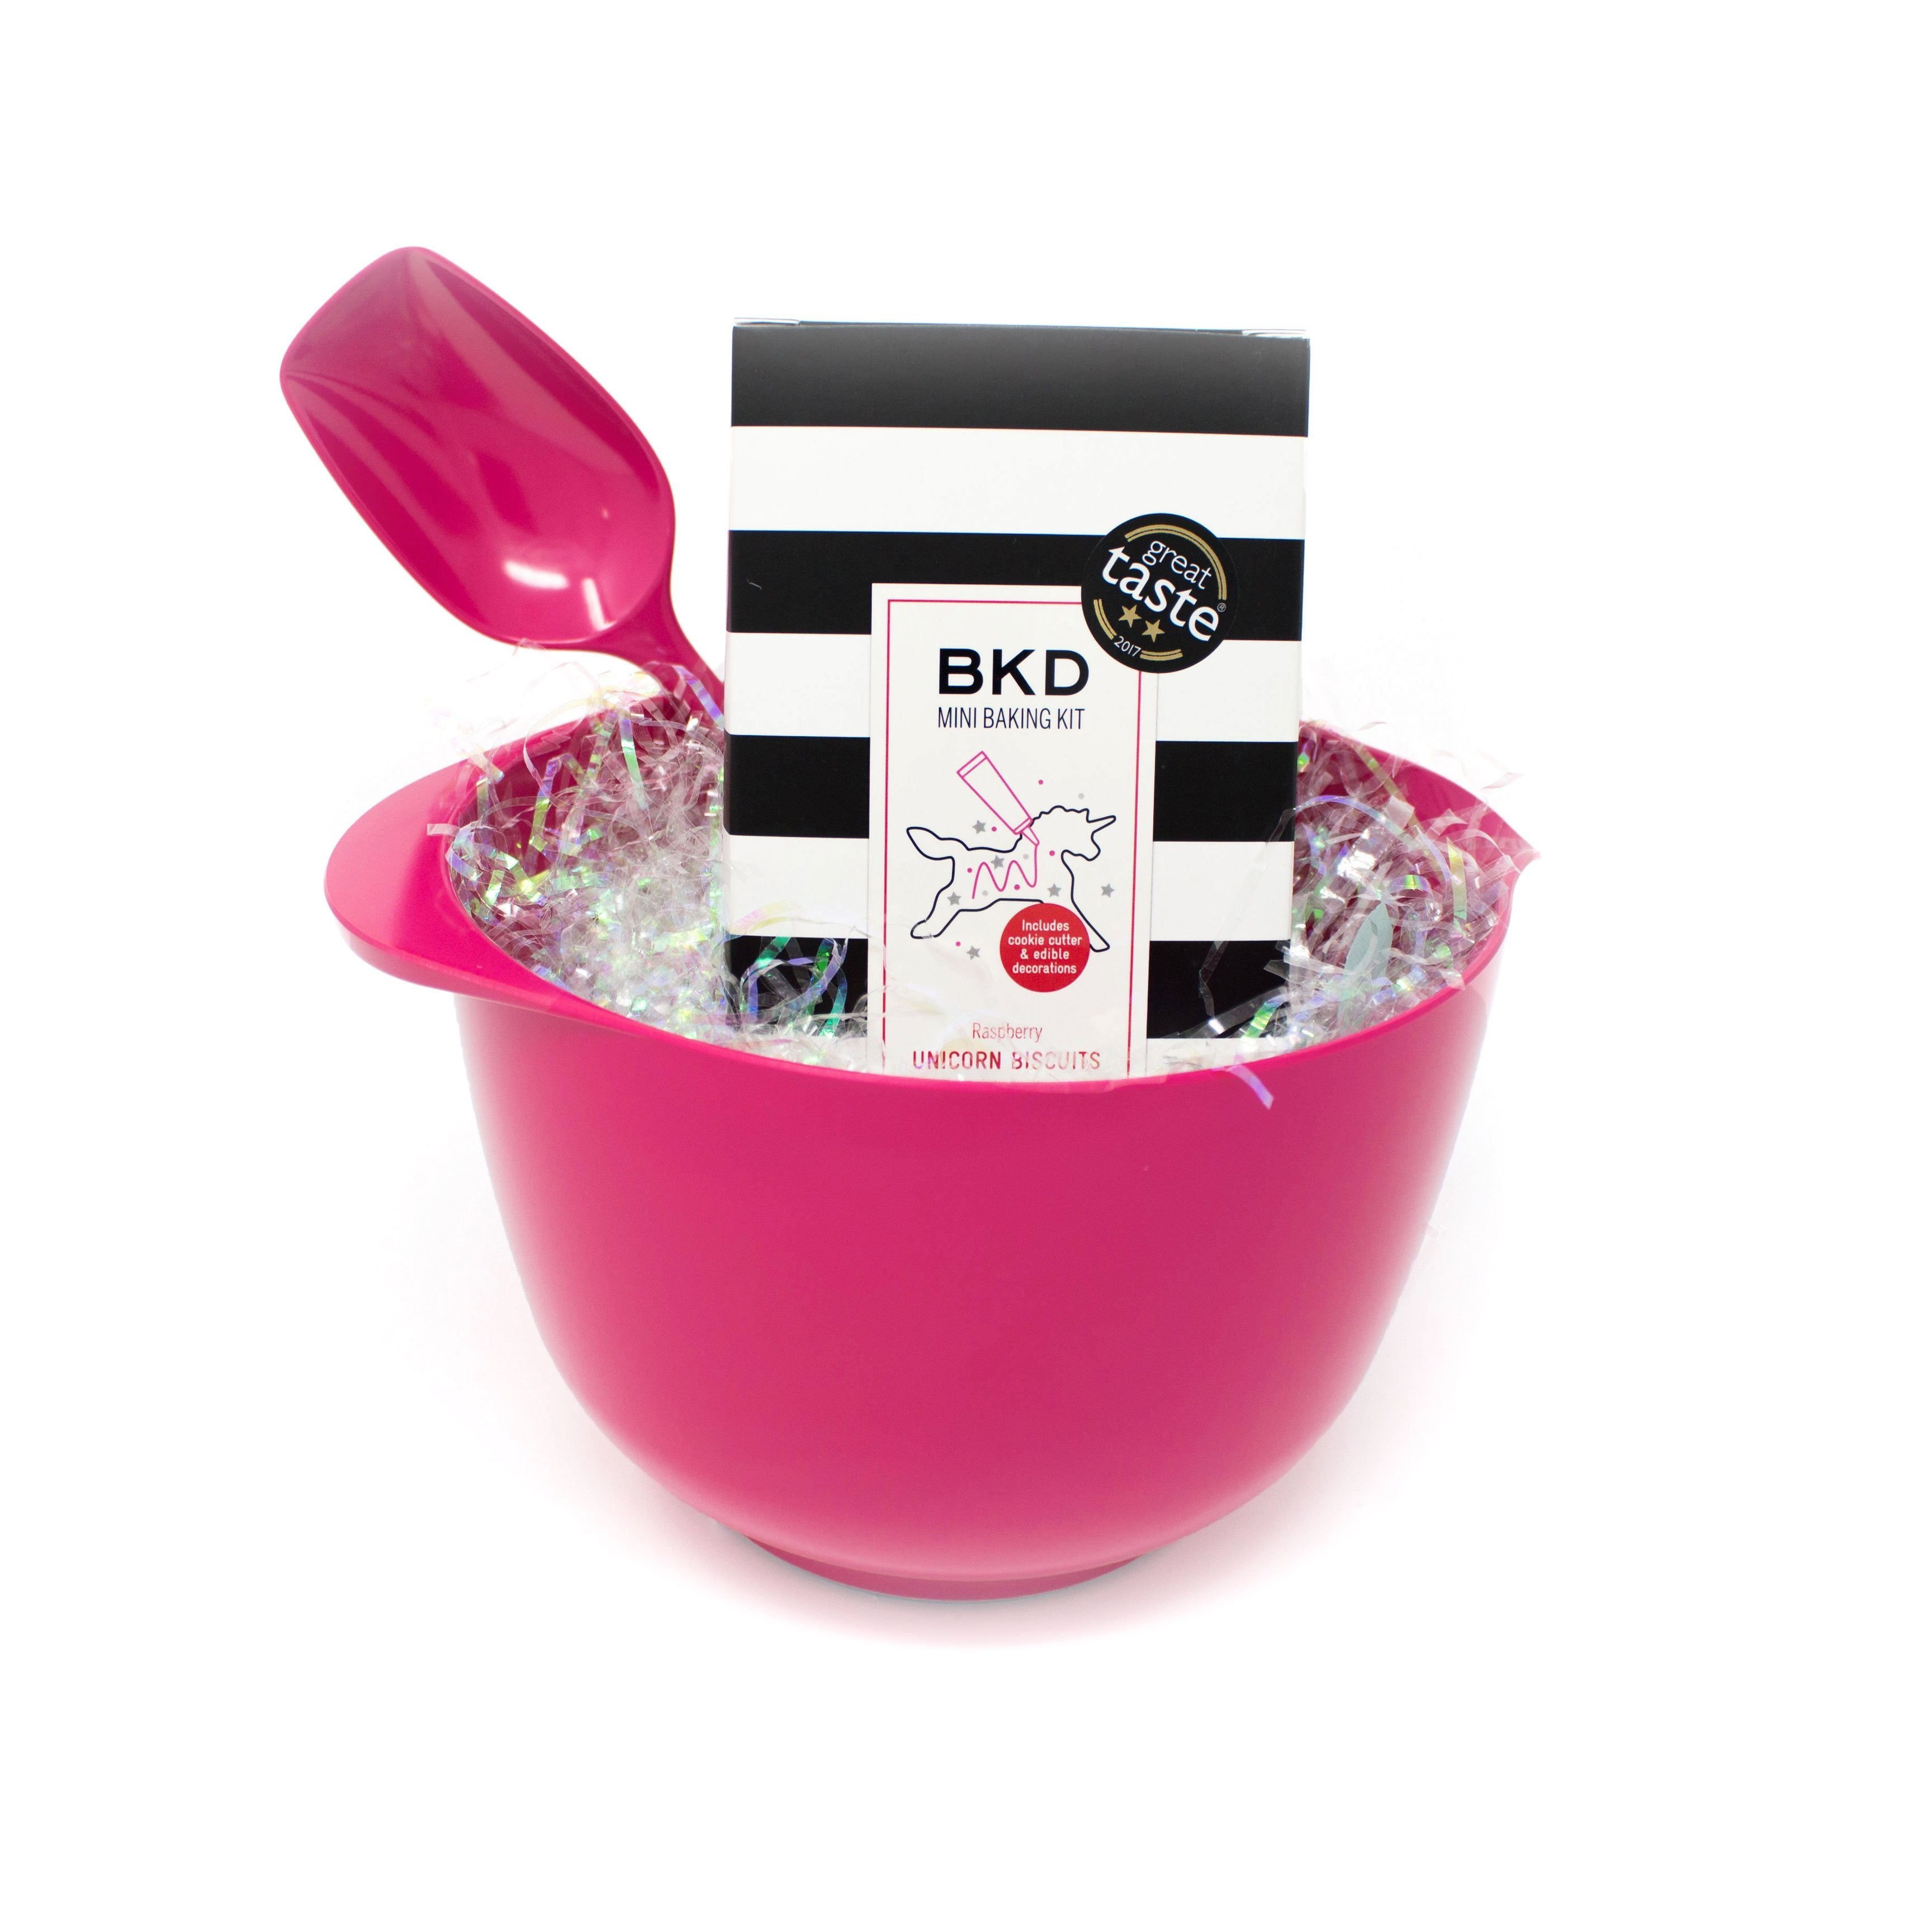 Baking Gift Set | Mini Baking Kit, Mixing Bowl + Spoon - BKD